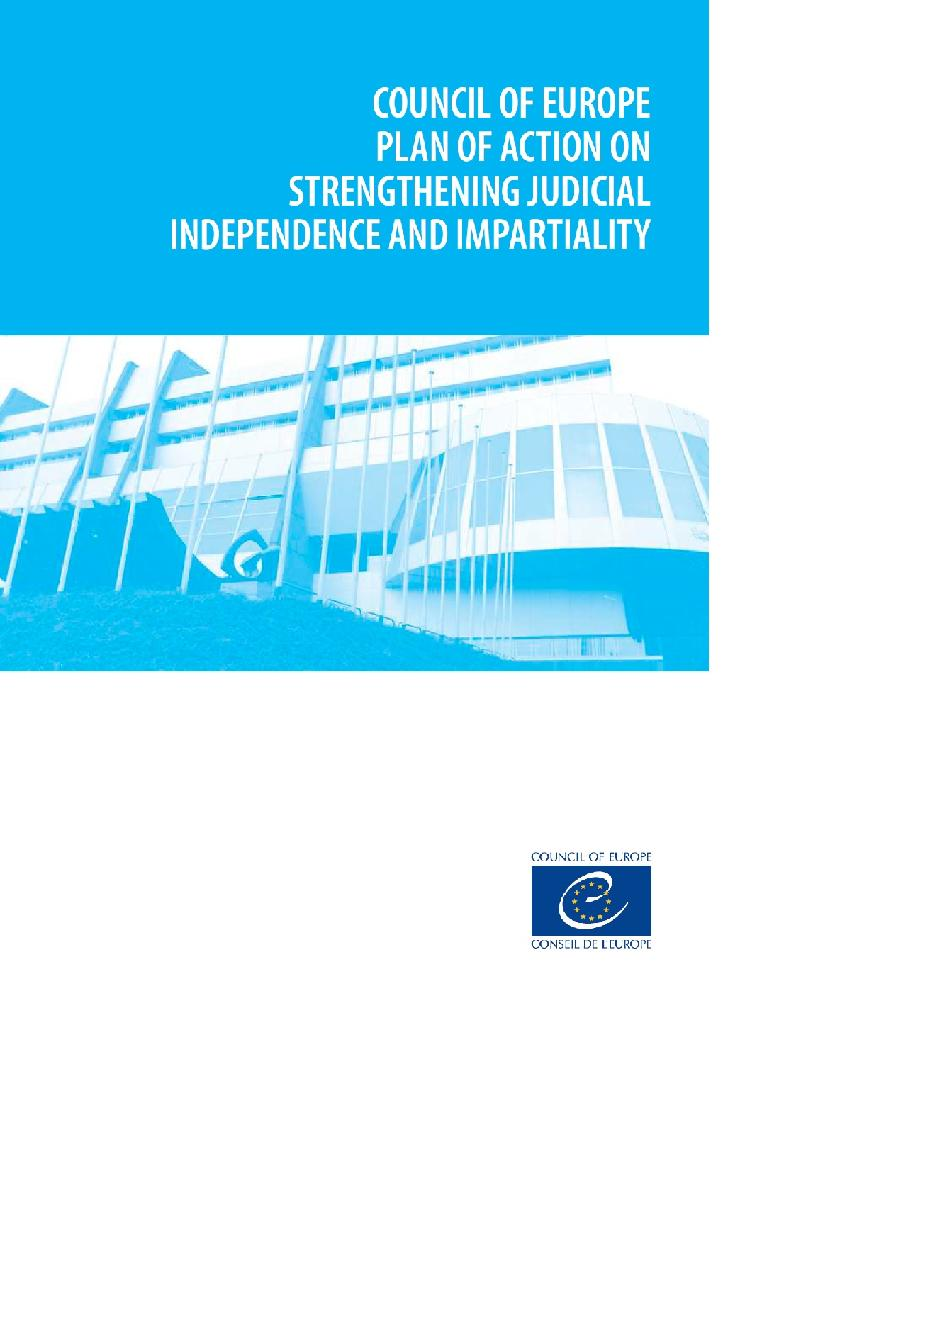 Implications of the decisions of international courts and treaty bodies as regards the practical independence of prosecutors